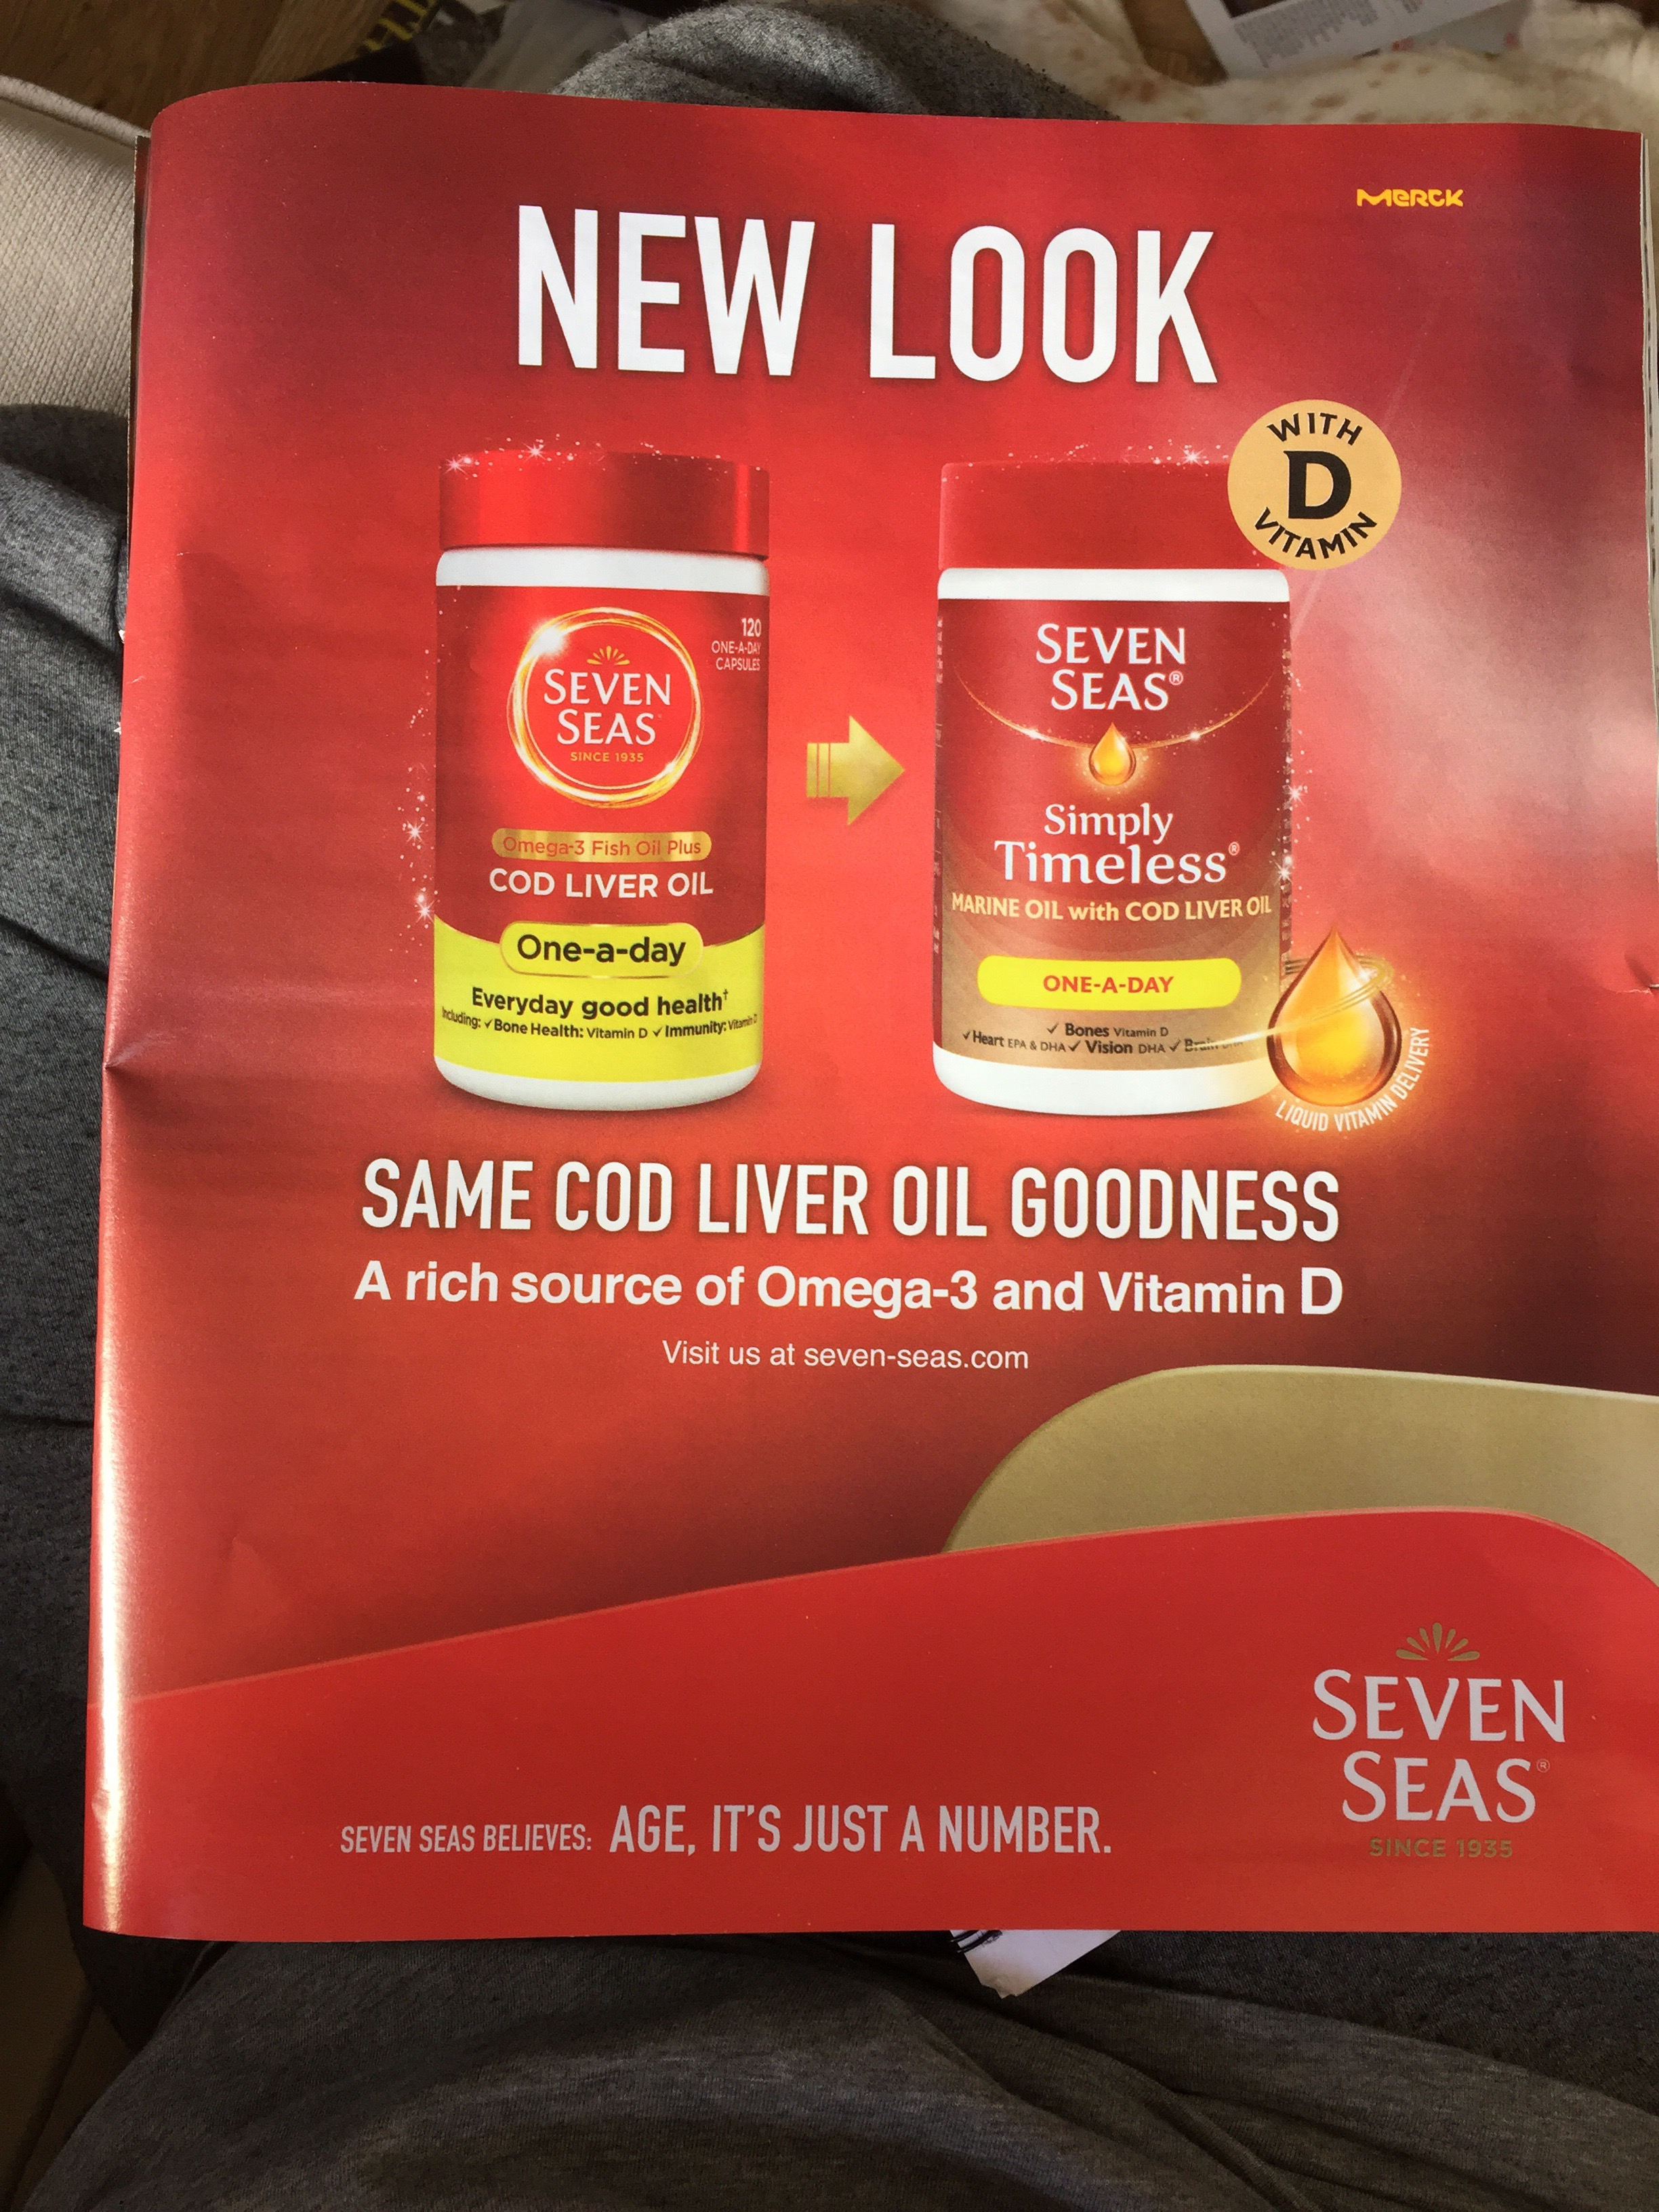 Seven seas – new look same cod liver oil goodness